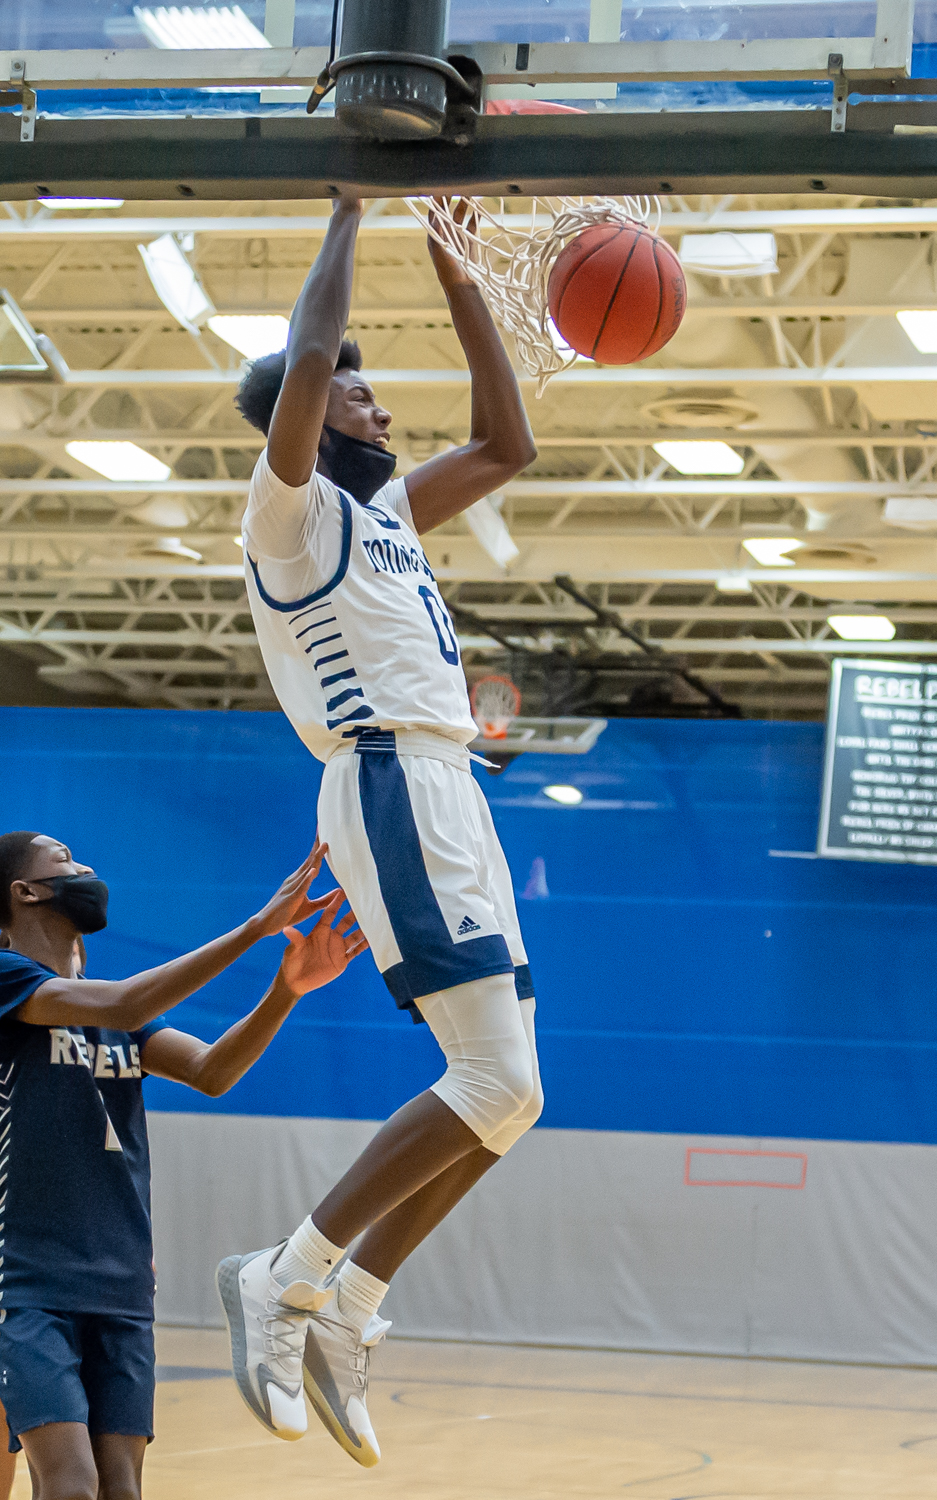 The Eagles' Demarion Watson goes up for a slam dunk in the first half Thursday. The Eagles fell to the rival Rebels 75-65 at Champlin Park. Photo by Earl J. Ebensteiner, SportsEngine